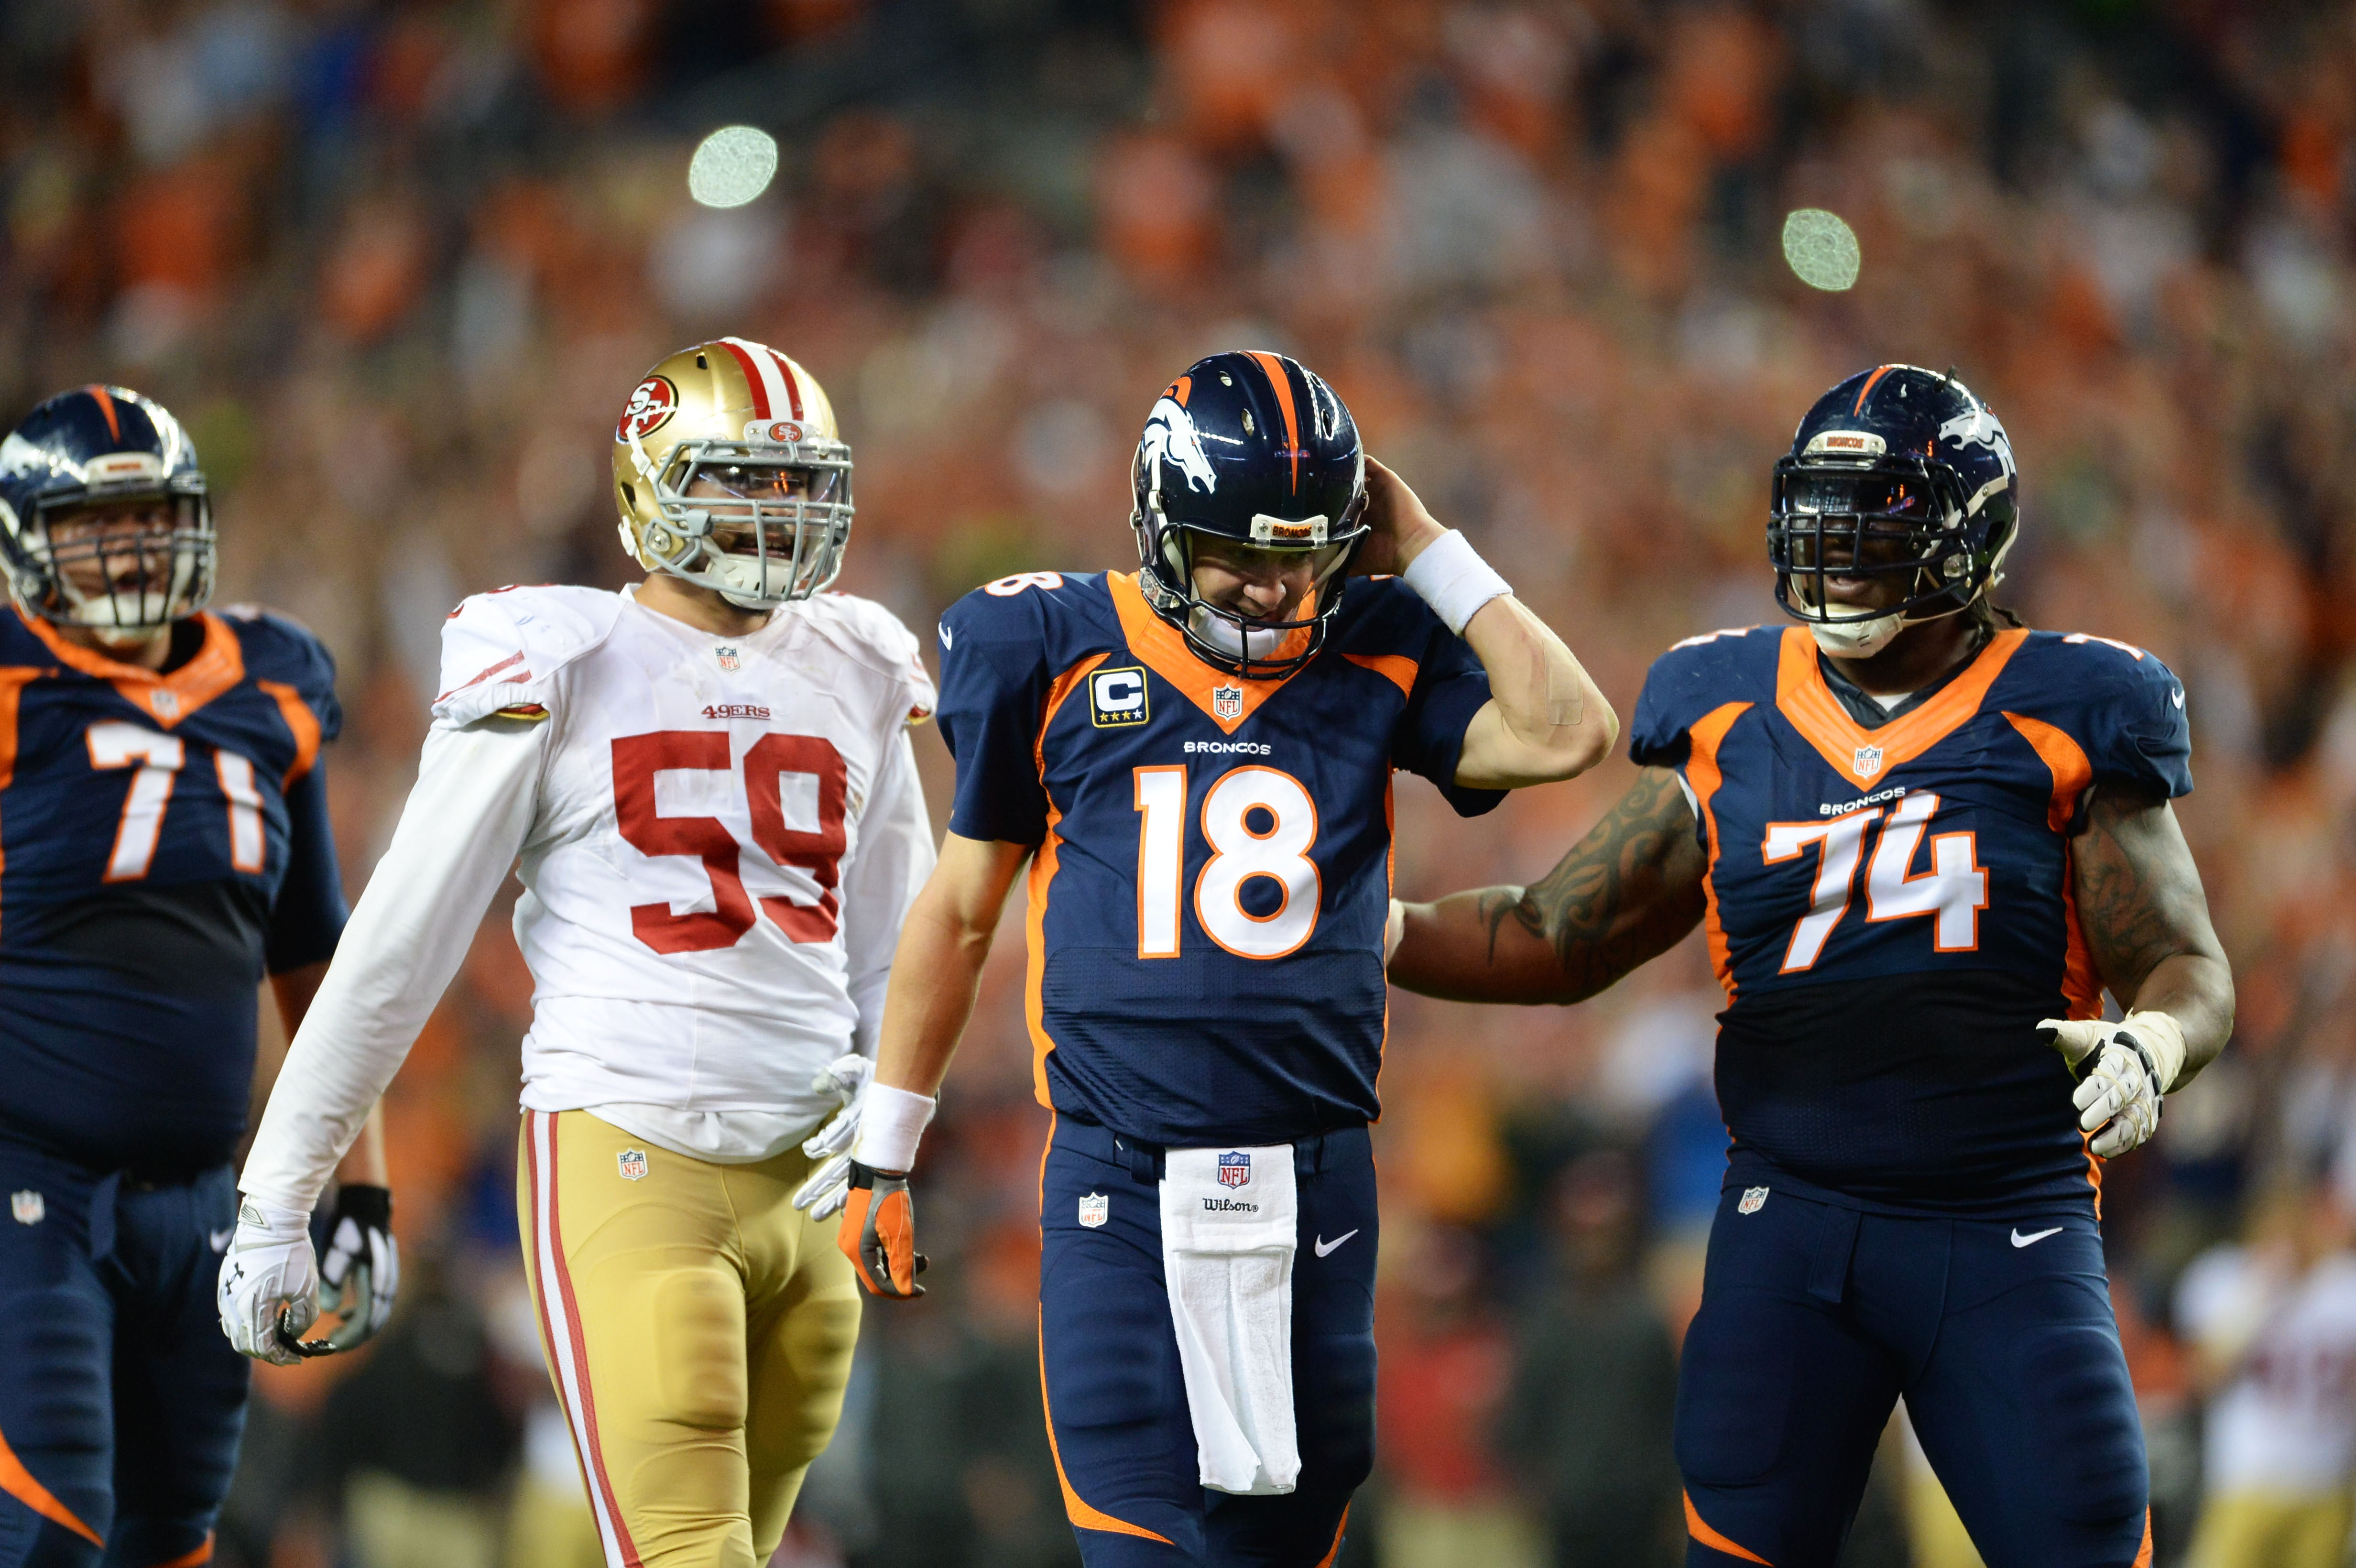 Denver Broncos guard Orlando Franklin, right, congratulates Peyton Manning on his touchdown pass. (USA Today Sports)